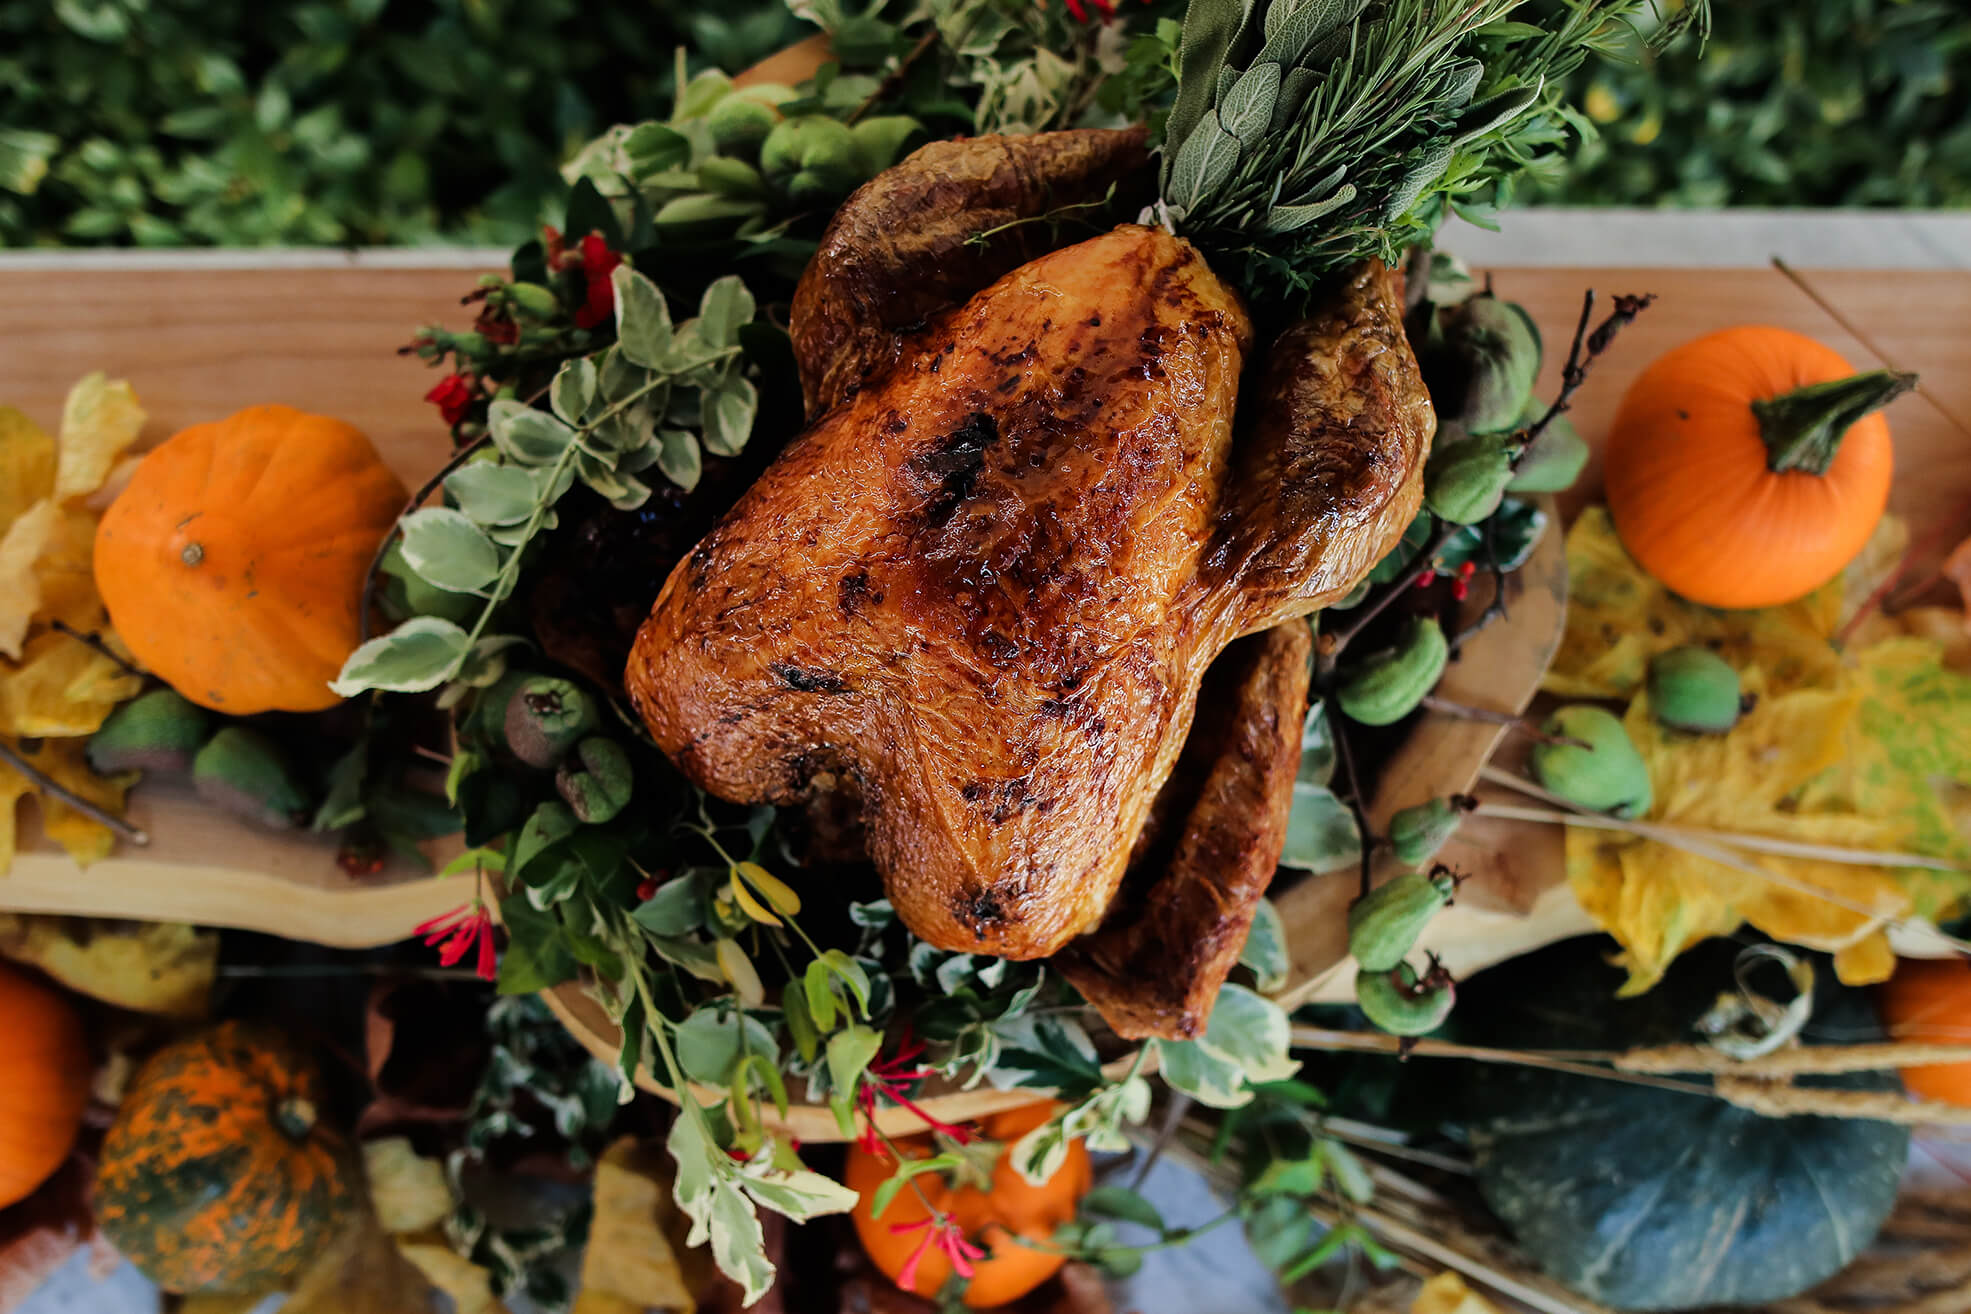 Roasted Fraser Valley turkey | Photo provided by SMC Communications